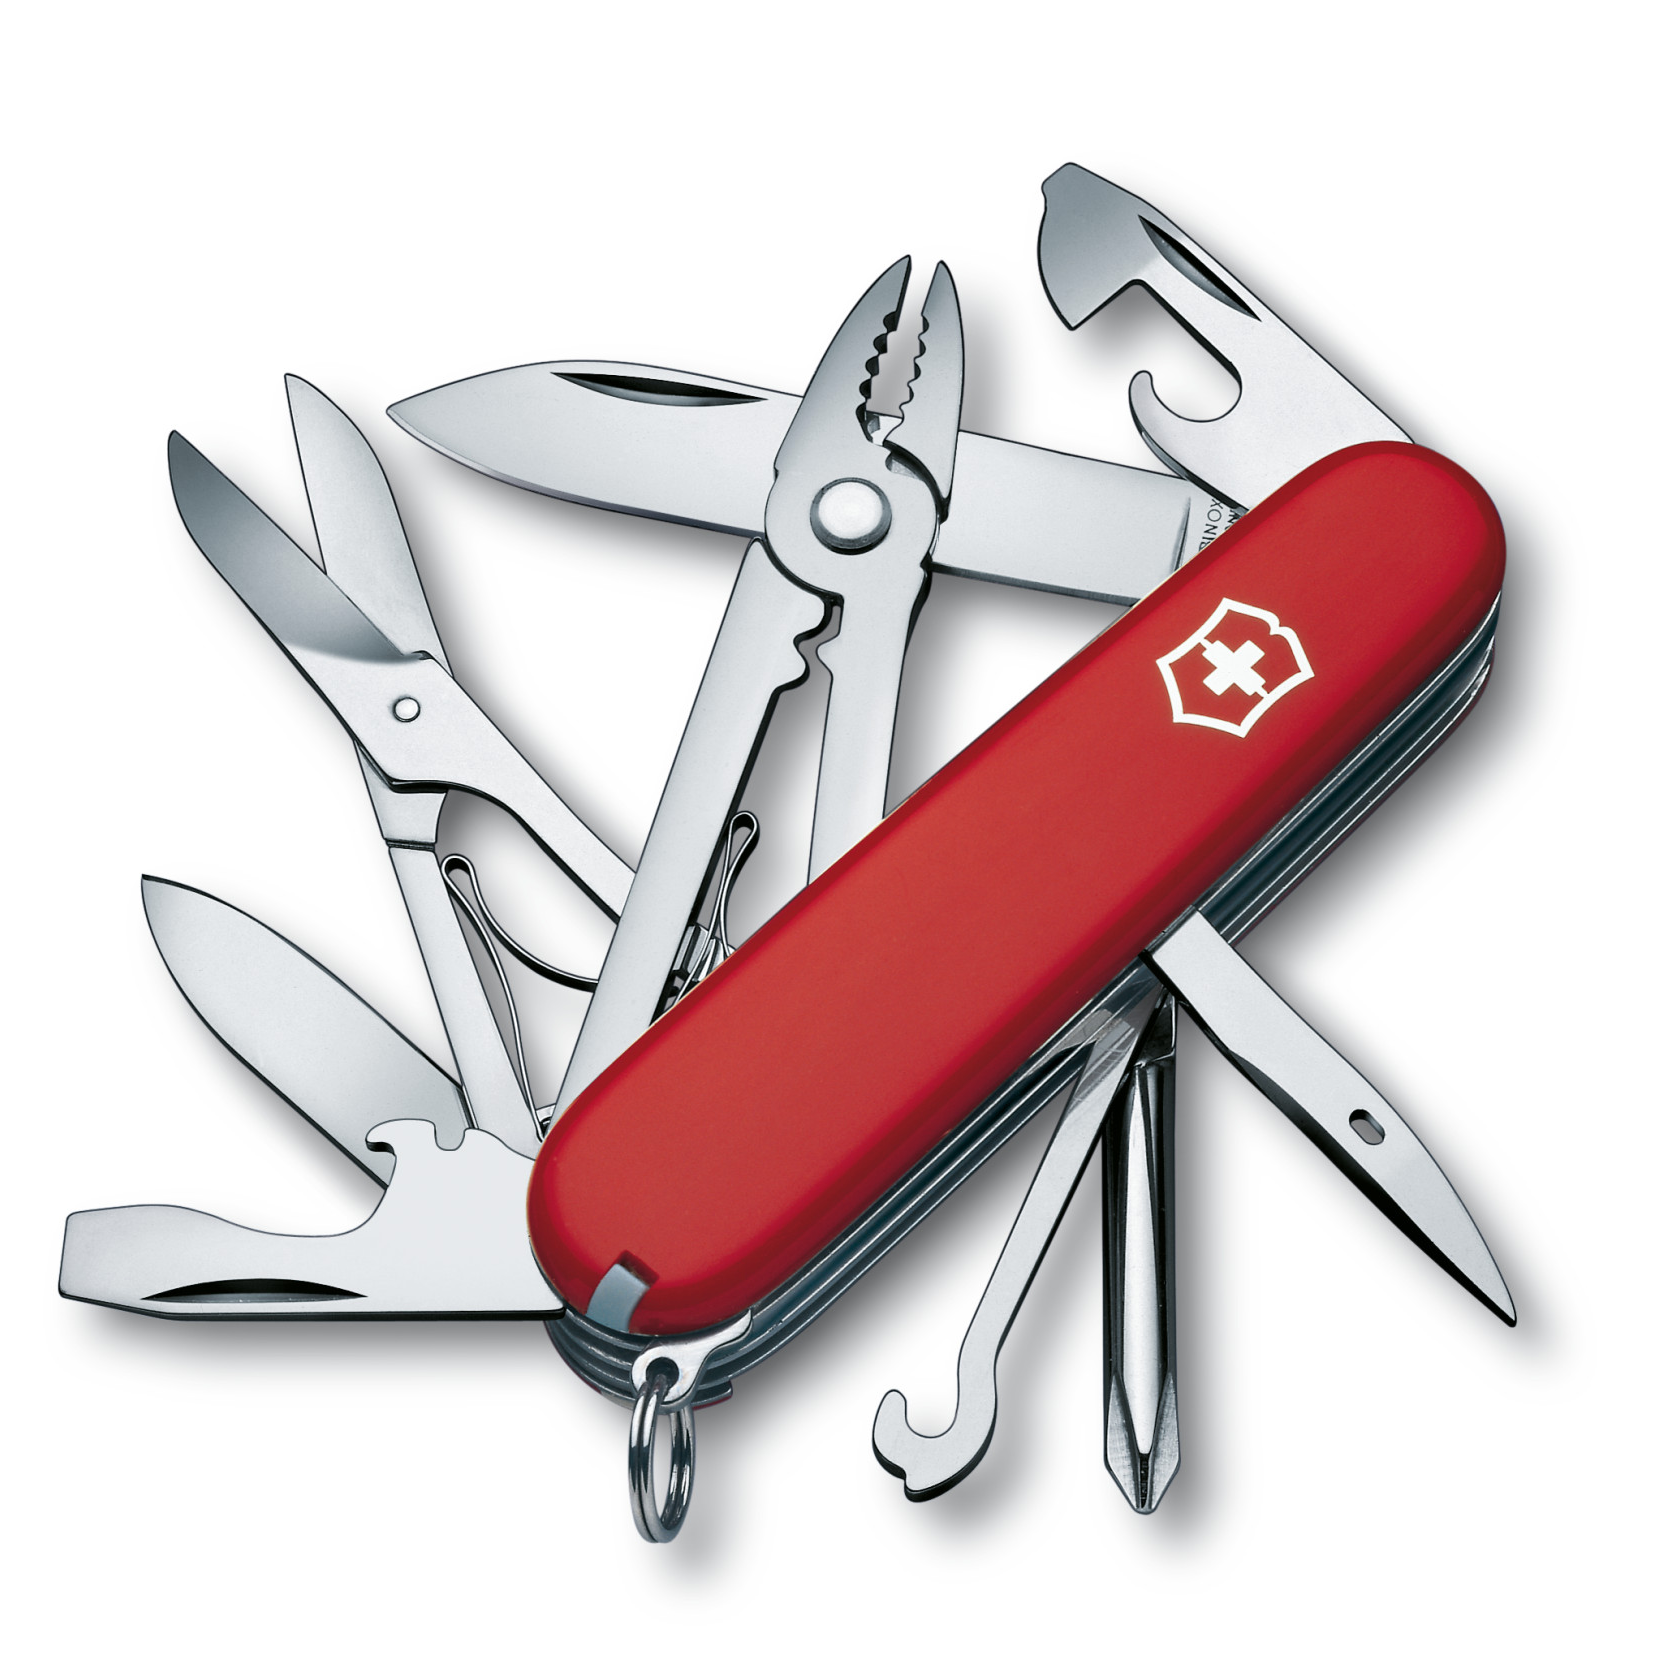 Victorinox Deluxe Tinker Multitool (Red) - Thomas Tools